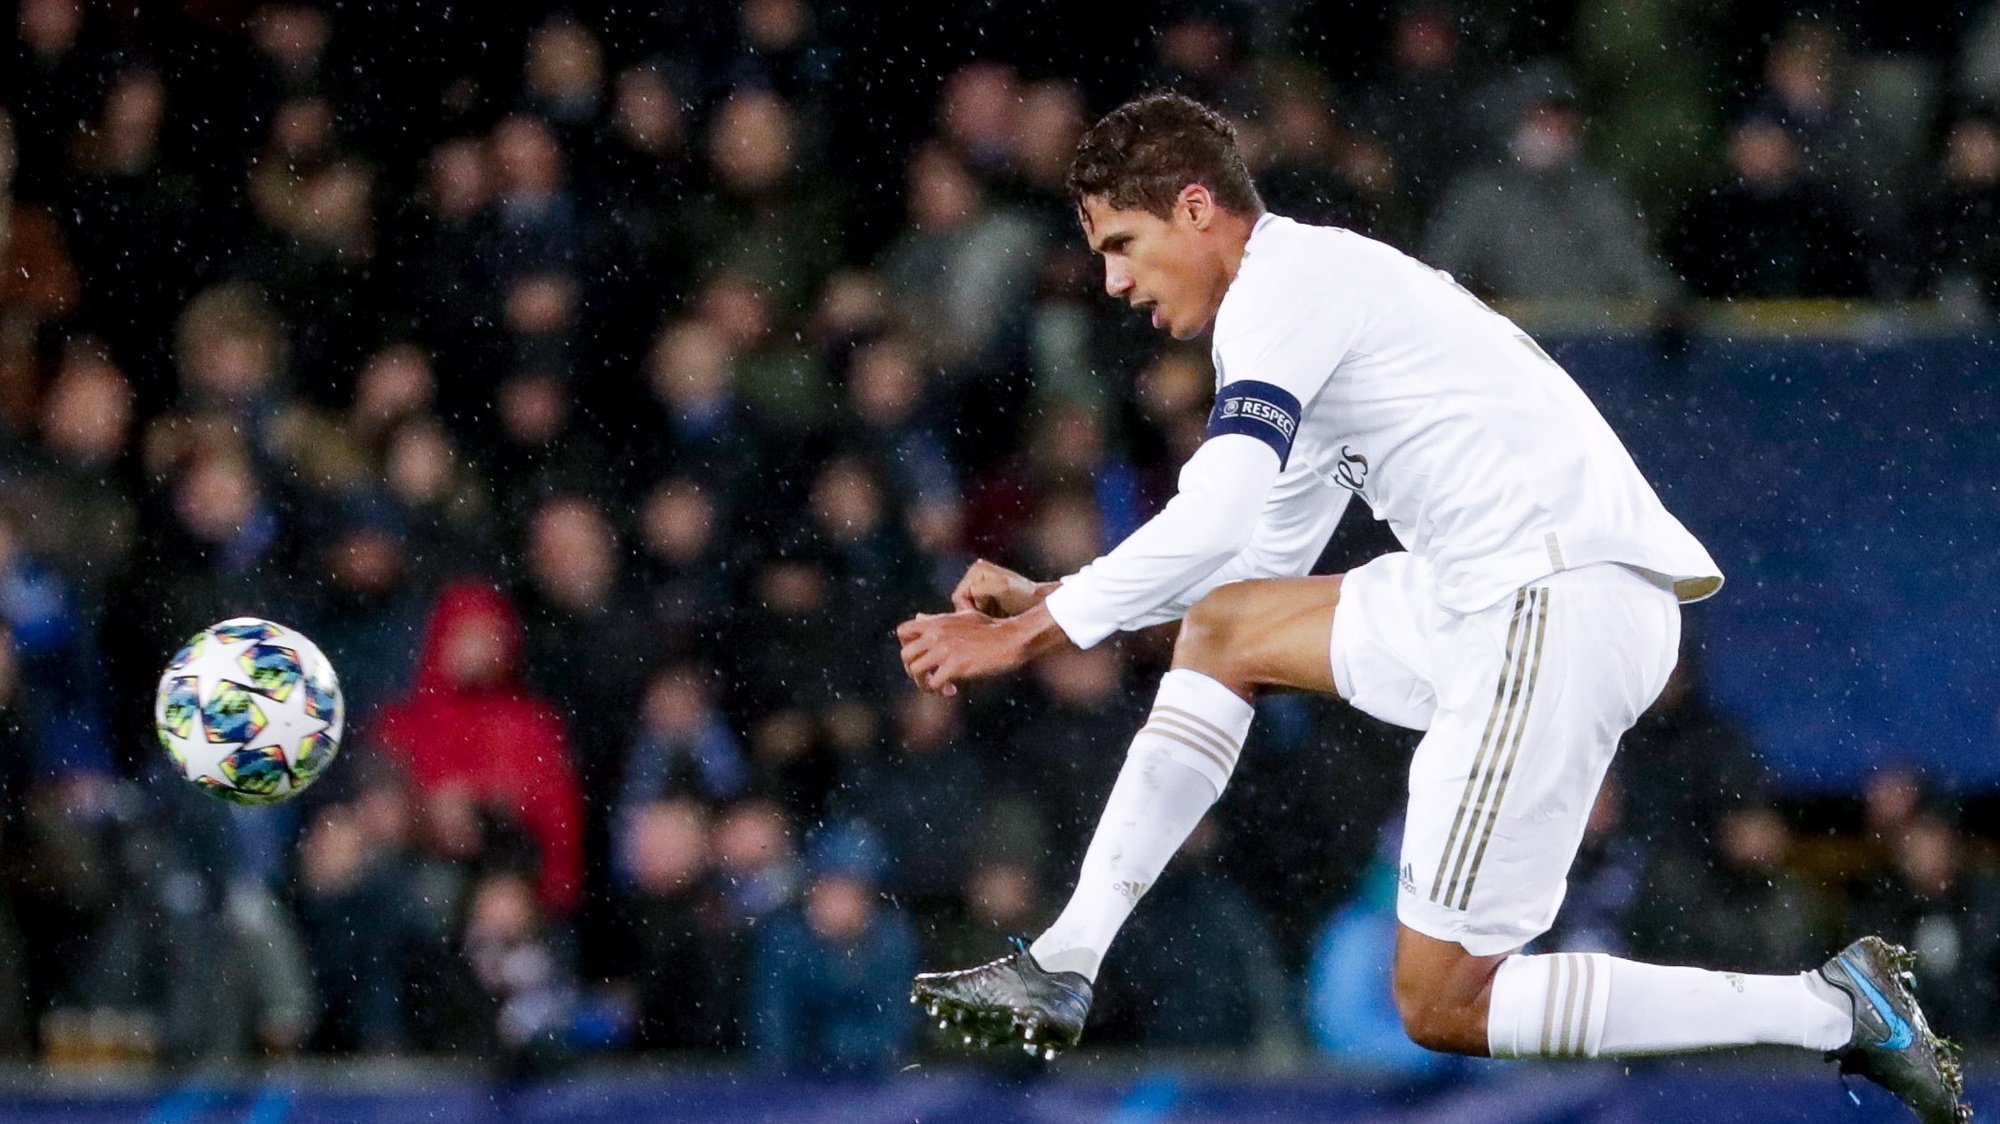 epa08063776 Raphael Varane of Real Madrid in action during the UEFA Champions League group A match between Club Brugge and Real Madrid in Bruges, Belgium, 11 December 2019.  EPA/STEPHANIE LECOCQ